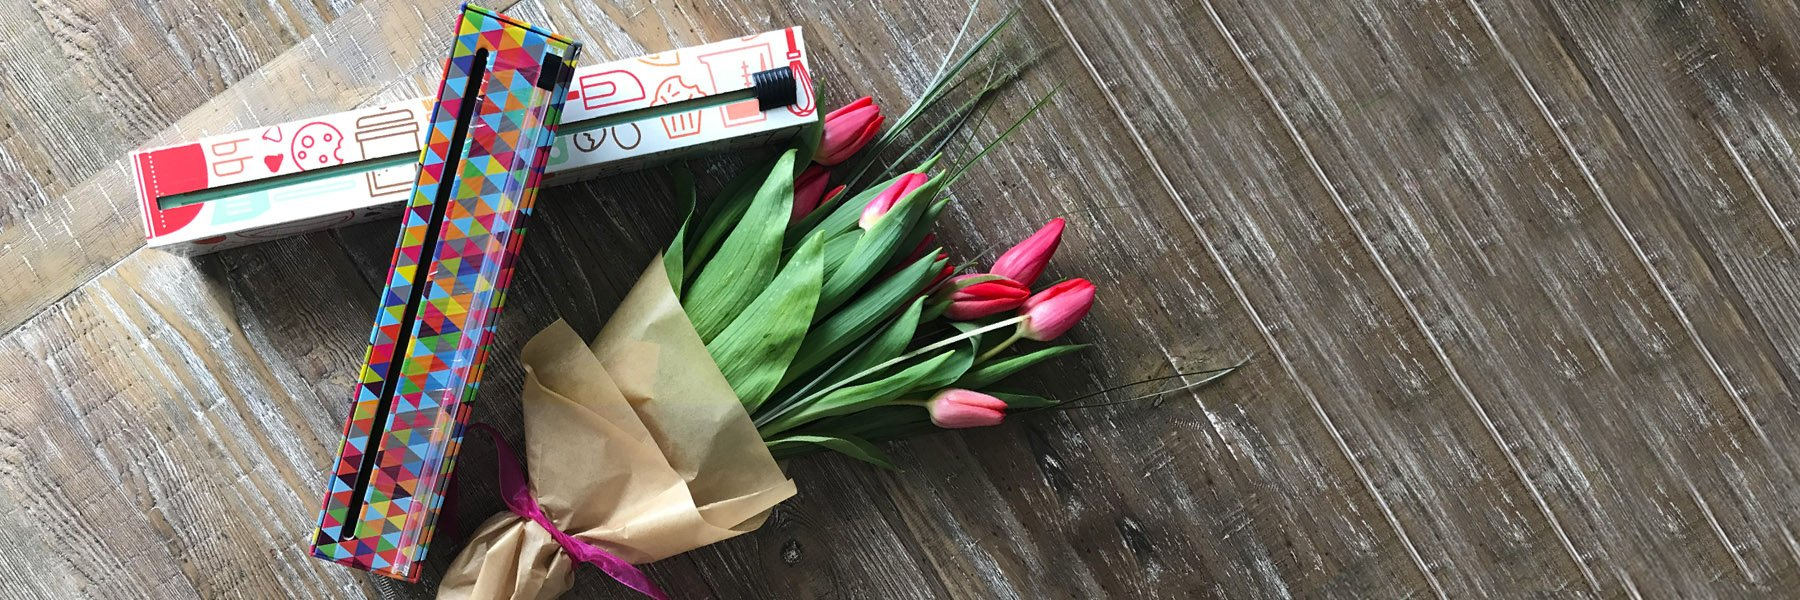 Chic Wrap dispensers with tulips